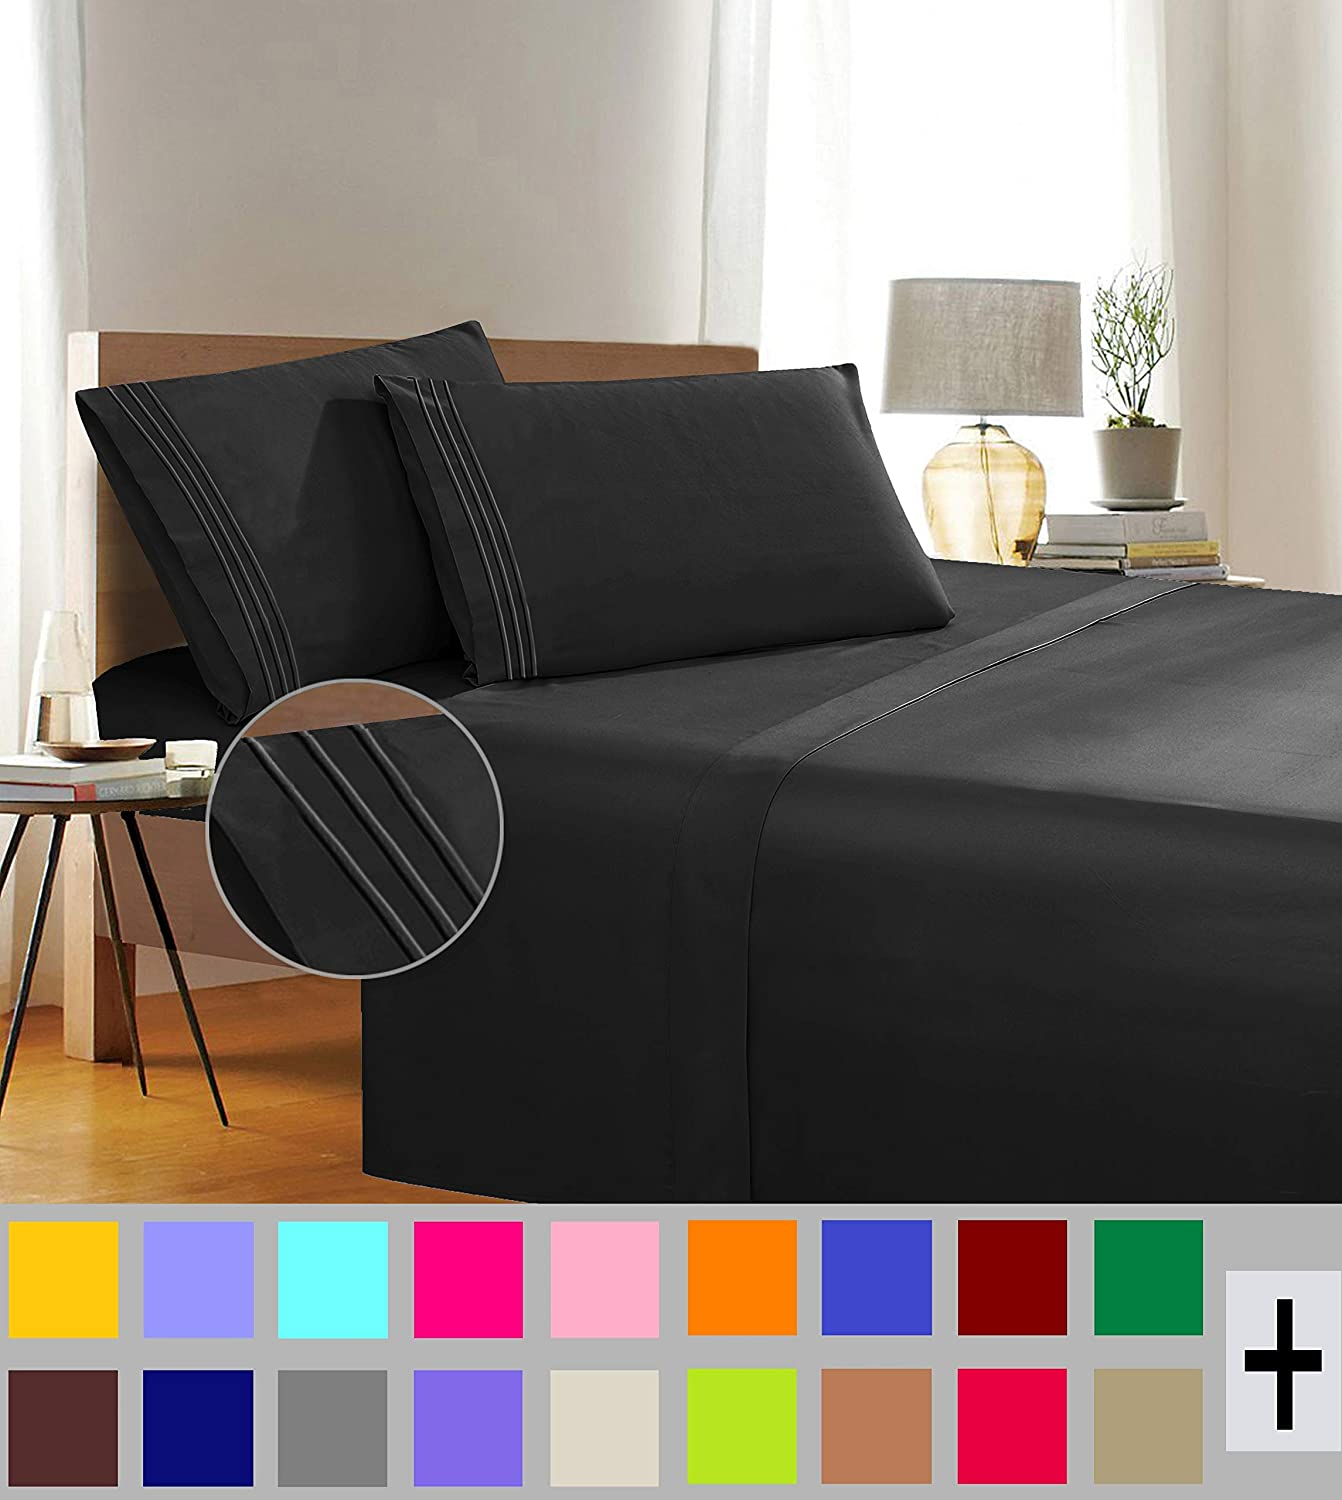 Amber Autumn 1500 Thread Count Wrinkle /& Fade Resistant Egyptian Quality 4-Piece Bed Sheet Set Ultra Soft Luxurious Set Includes Flat Sheet Fitted Sheet and 2 Pillowcases California King